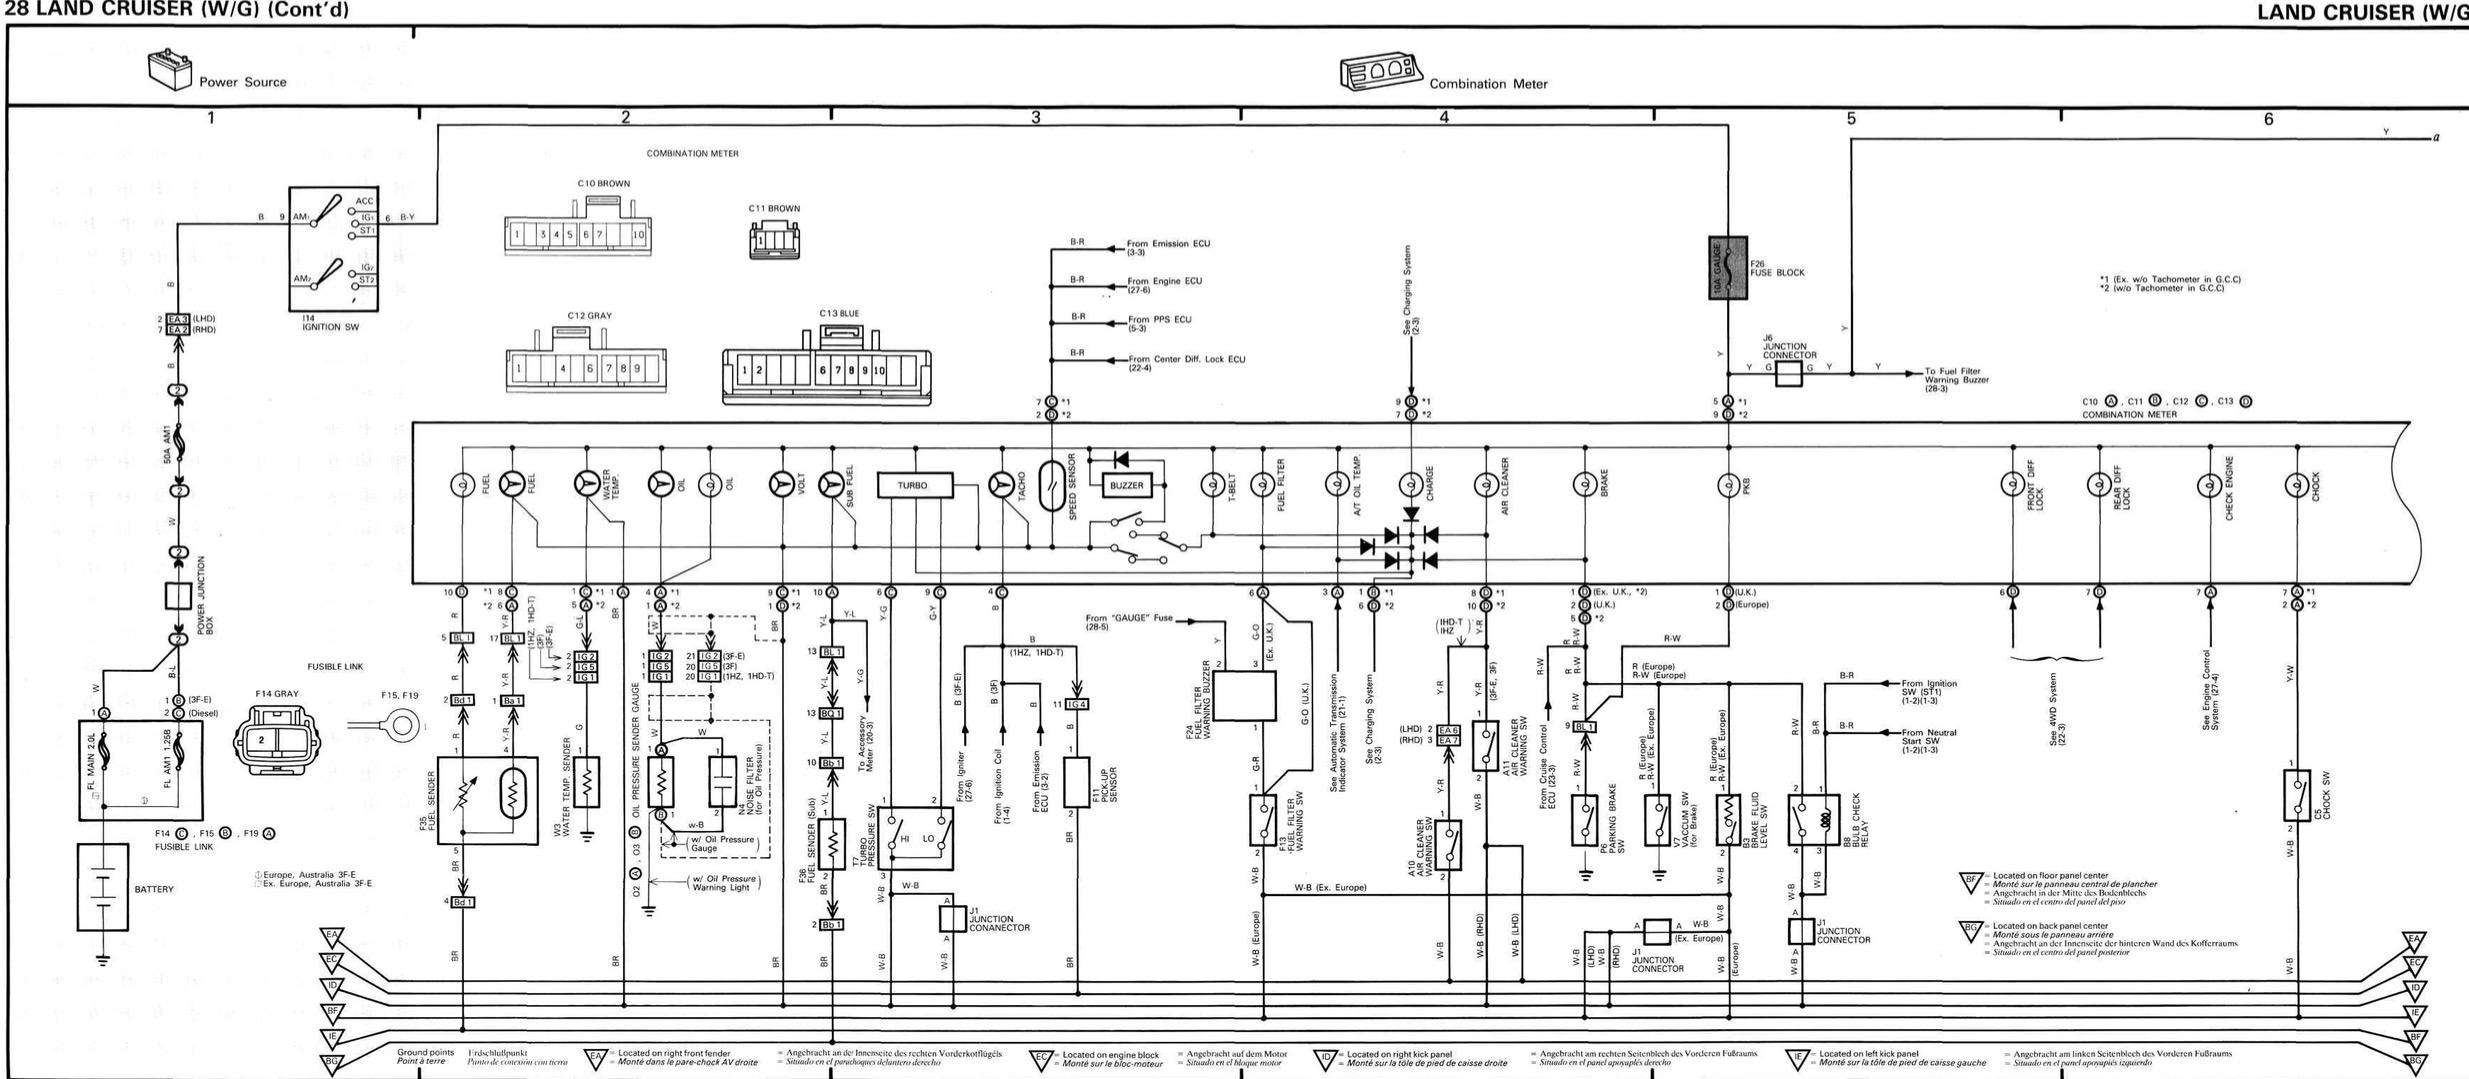 hj75 wiring diagram wiring a 400 amp service \u2022 free wiring toyota land cruiser wiring diagram at bakdesigns.co